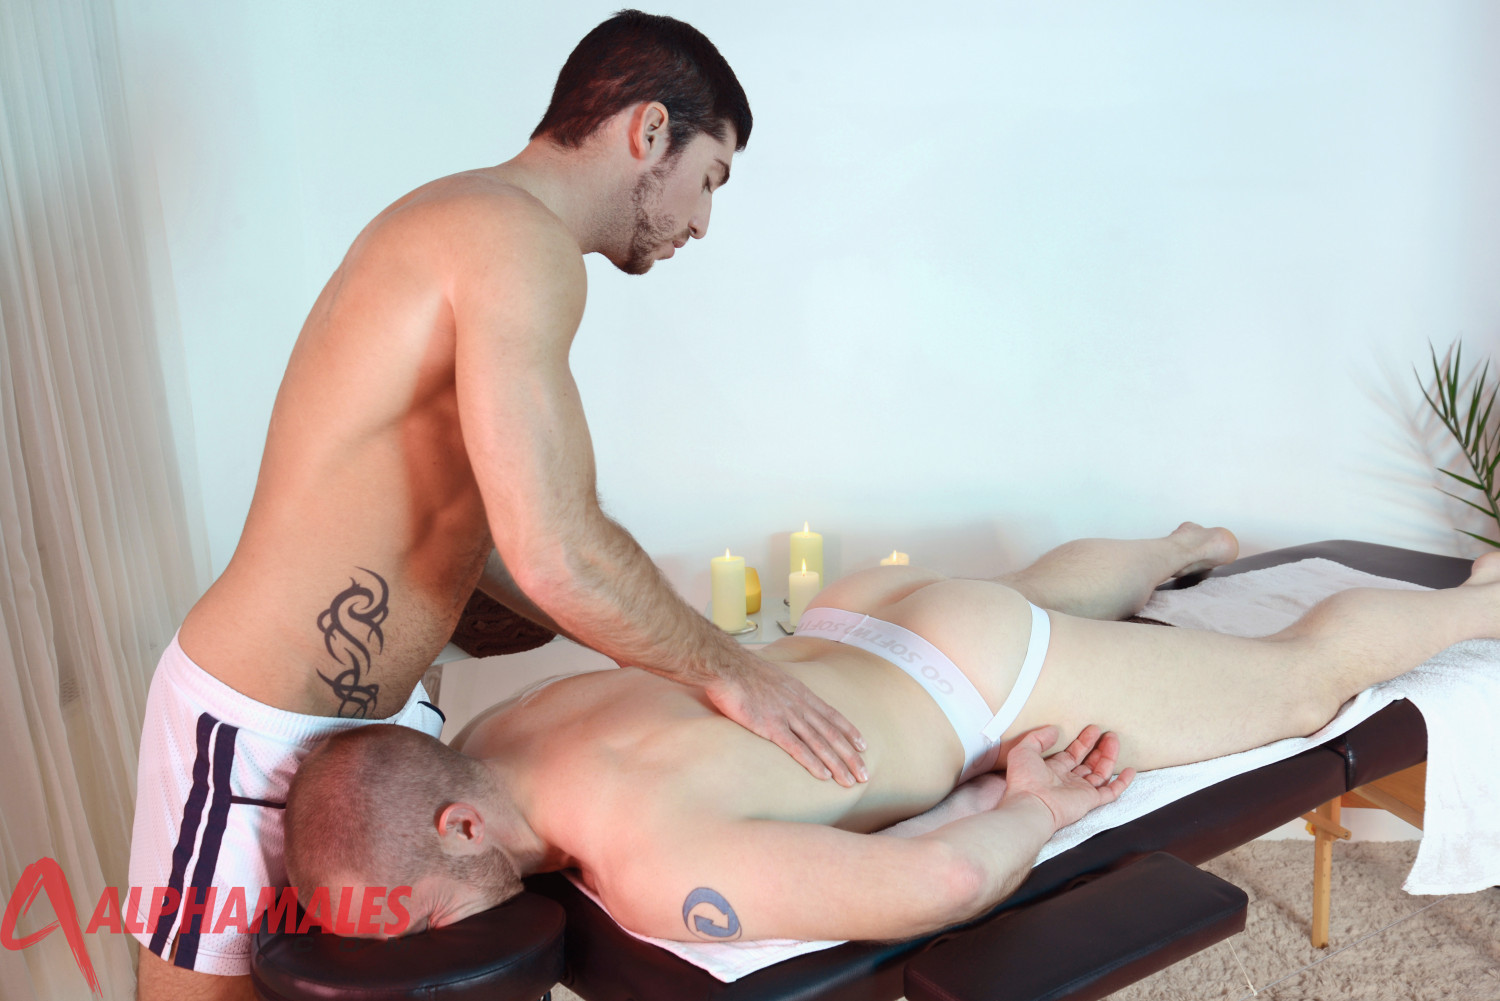 AlphaMales-Leo-Domenico-and-Adam-Herst-huge-beefy-guys-fucking-with-big-cocks-Amateur-Gay-Porn-01 Amateur Hung Guy Gets Fucked By His Big Cock Massage Therapist